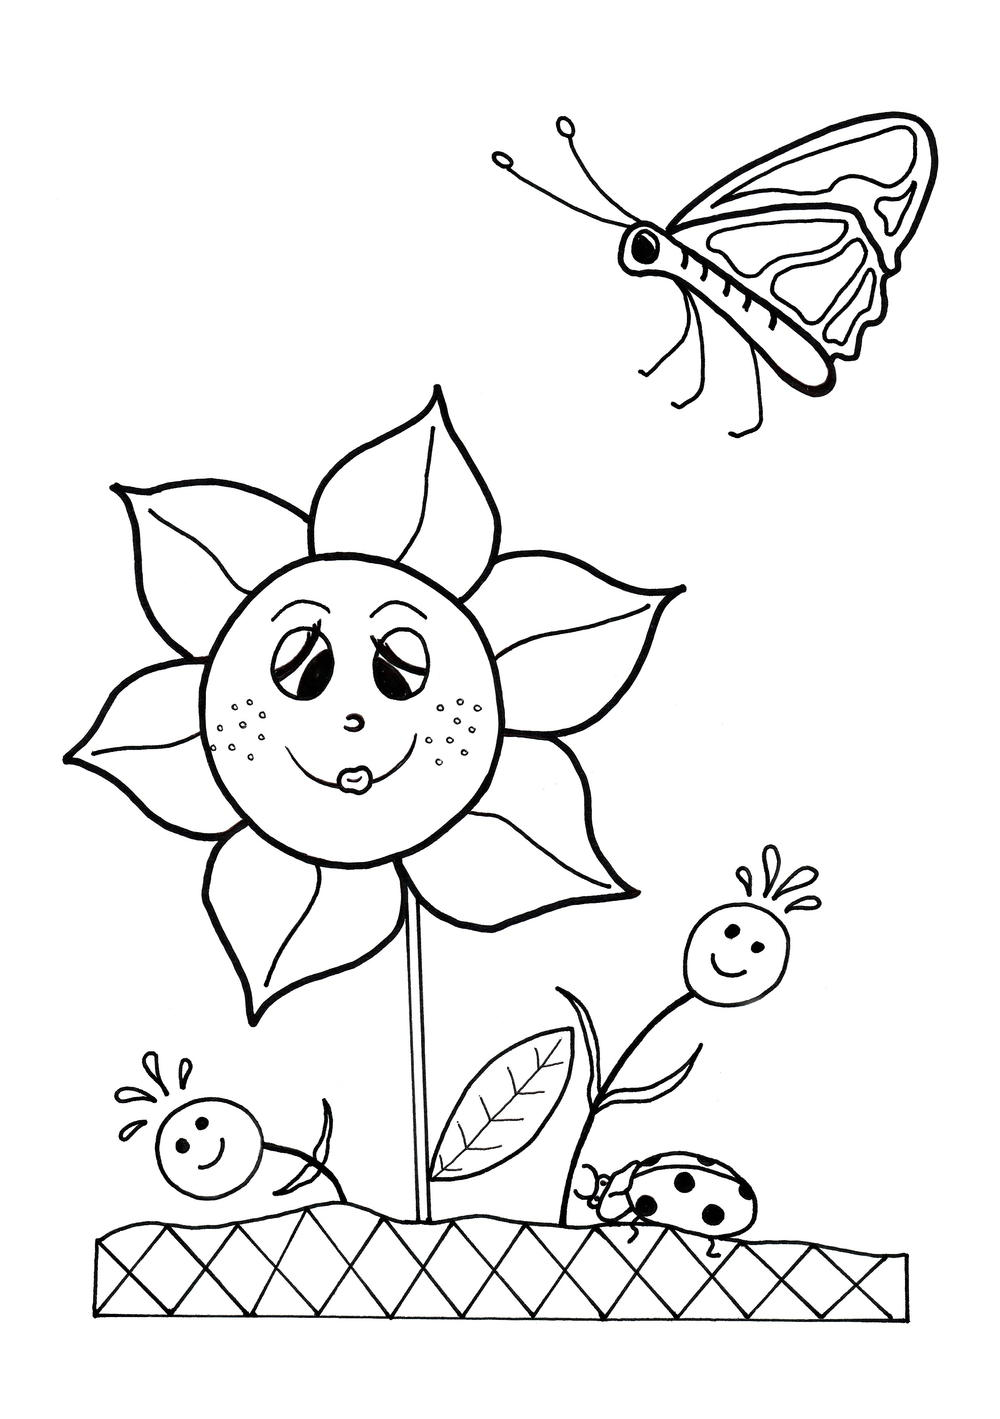 Dancing Flowers Spring Coloring Sheet | AllFreeKidsCrafts.com | free printable spring coloring pages